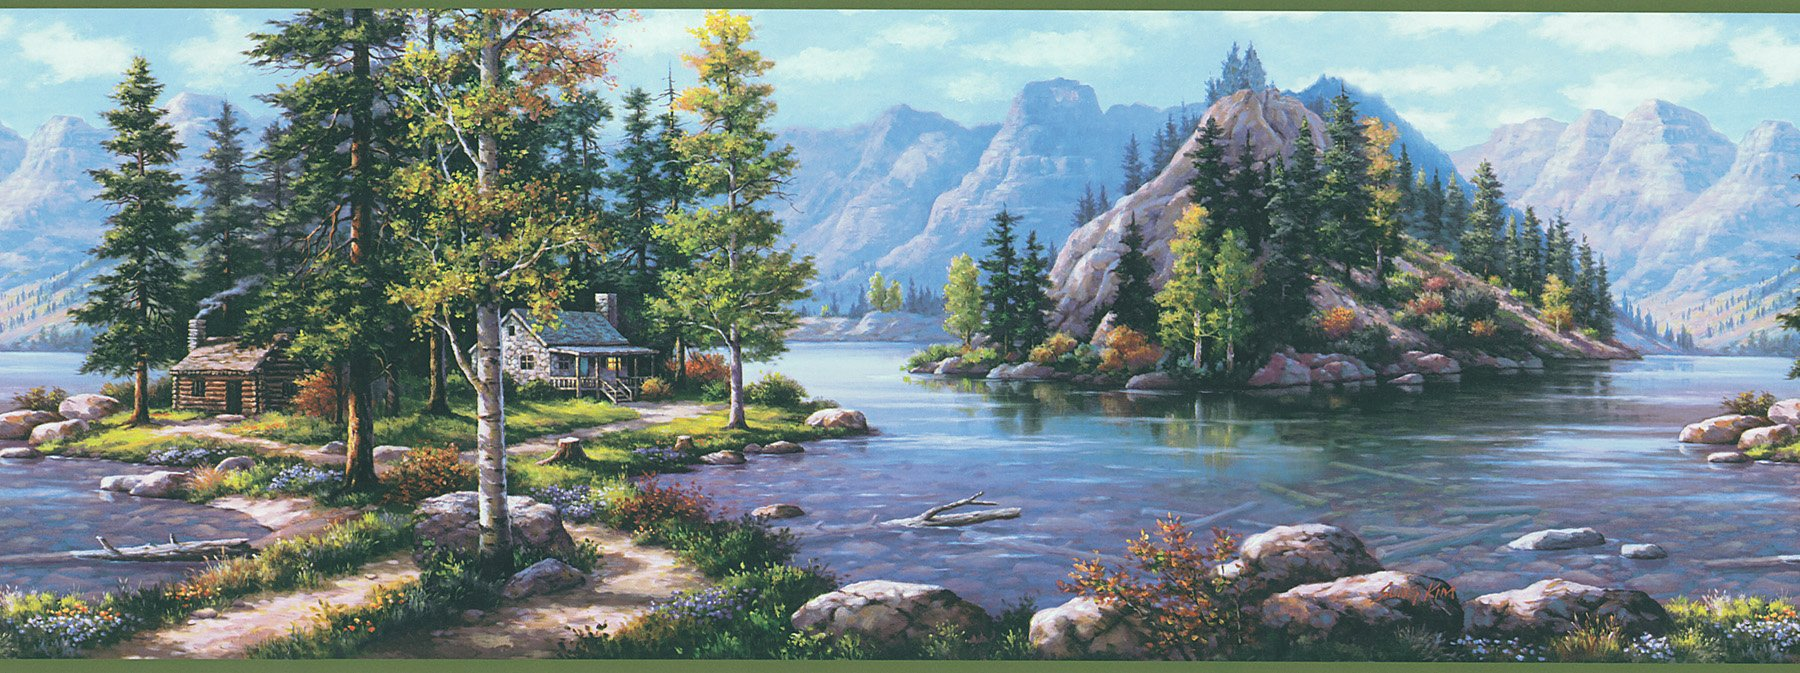 Brewster 145B87725 Northwoods Lodge Bunyan Blue Mountain Cabin Border Wallpaper by Brewster (Image #1)